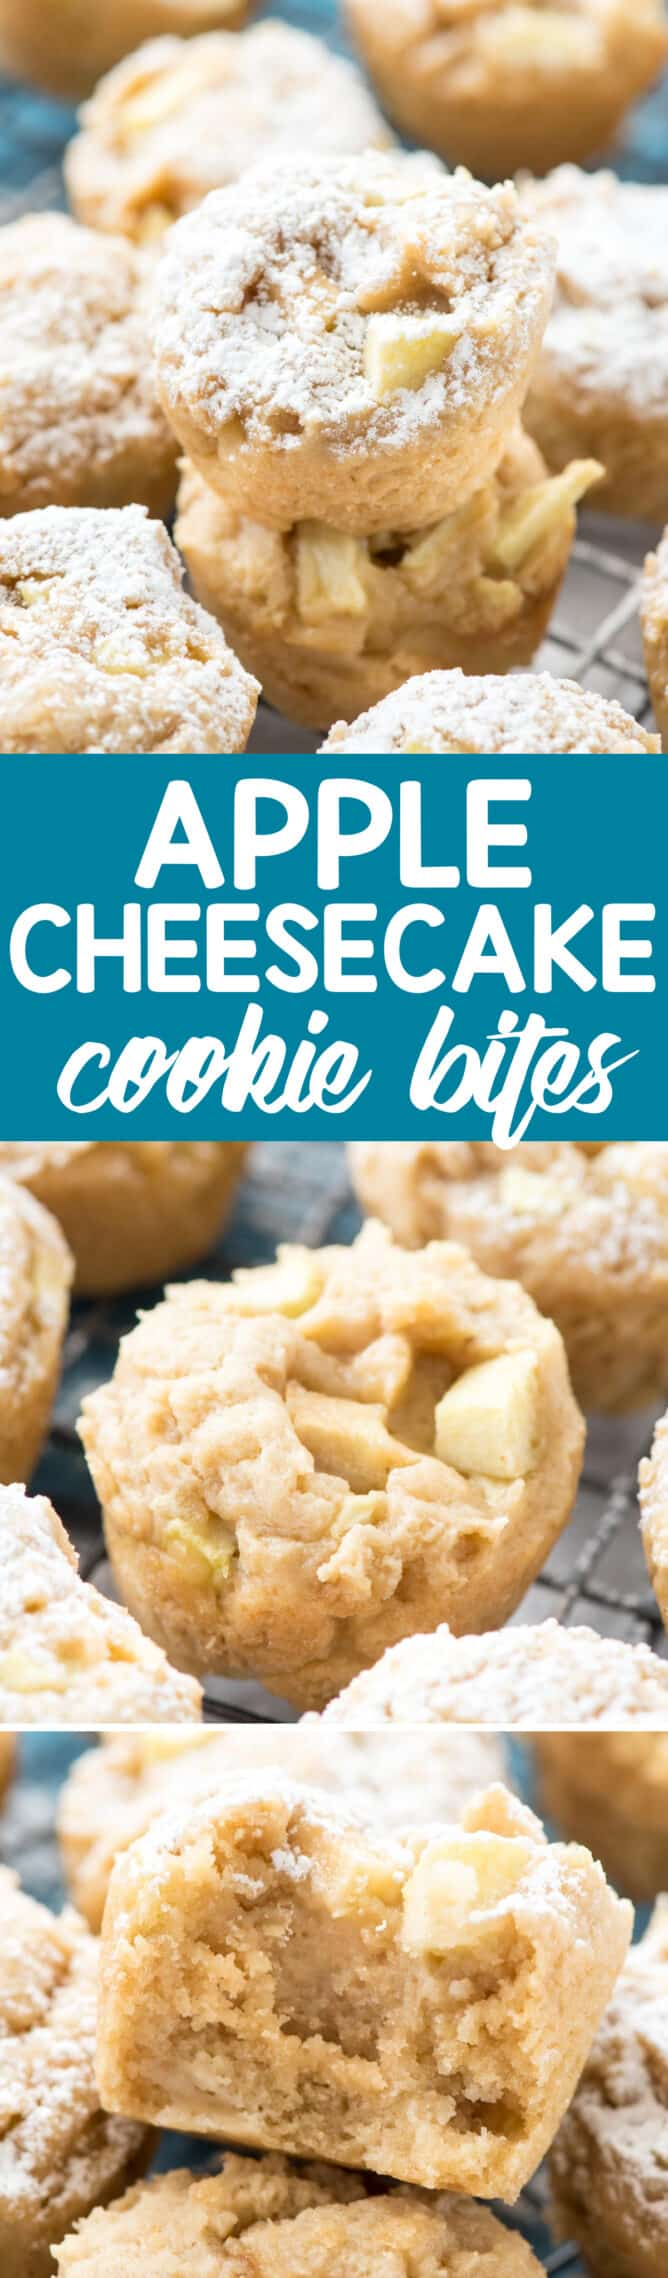 Apple Cheesecake Cookie Cups collage of three photos